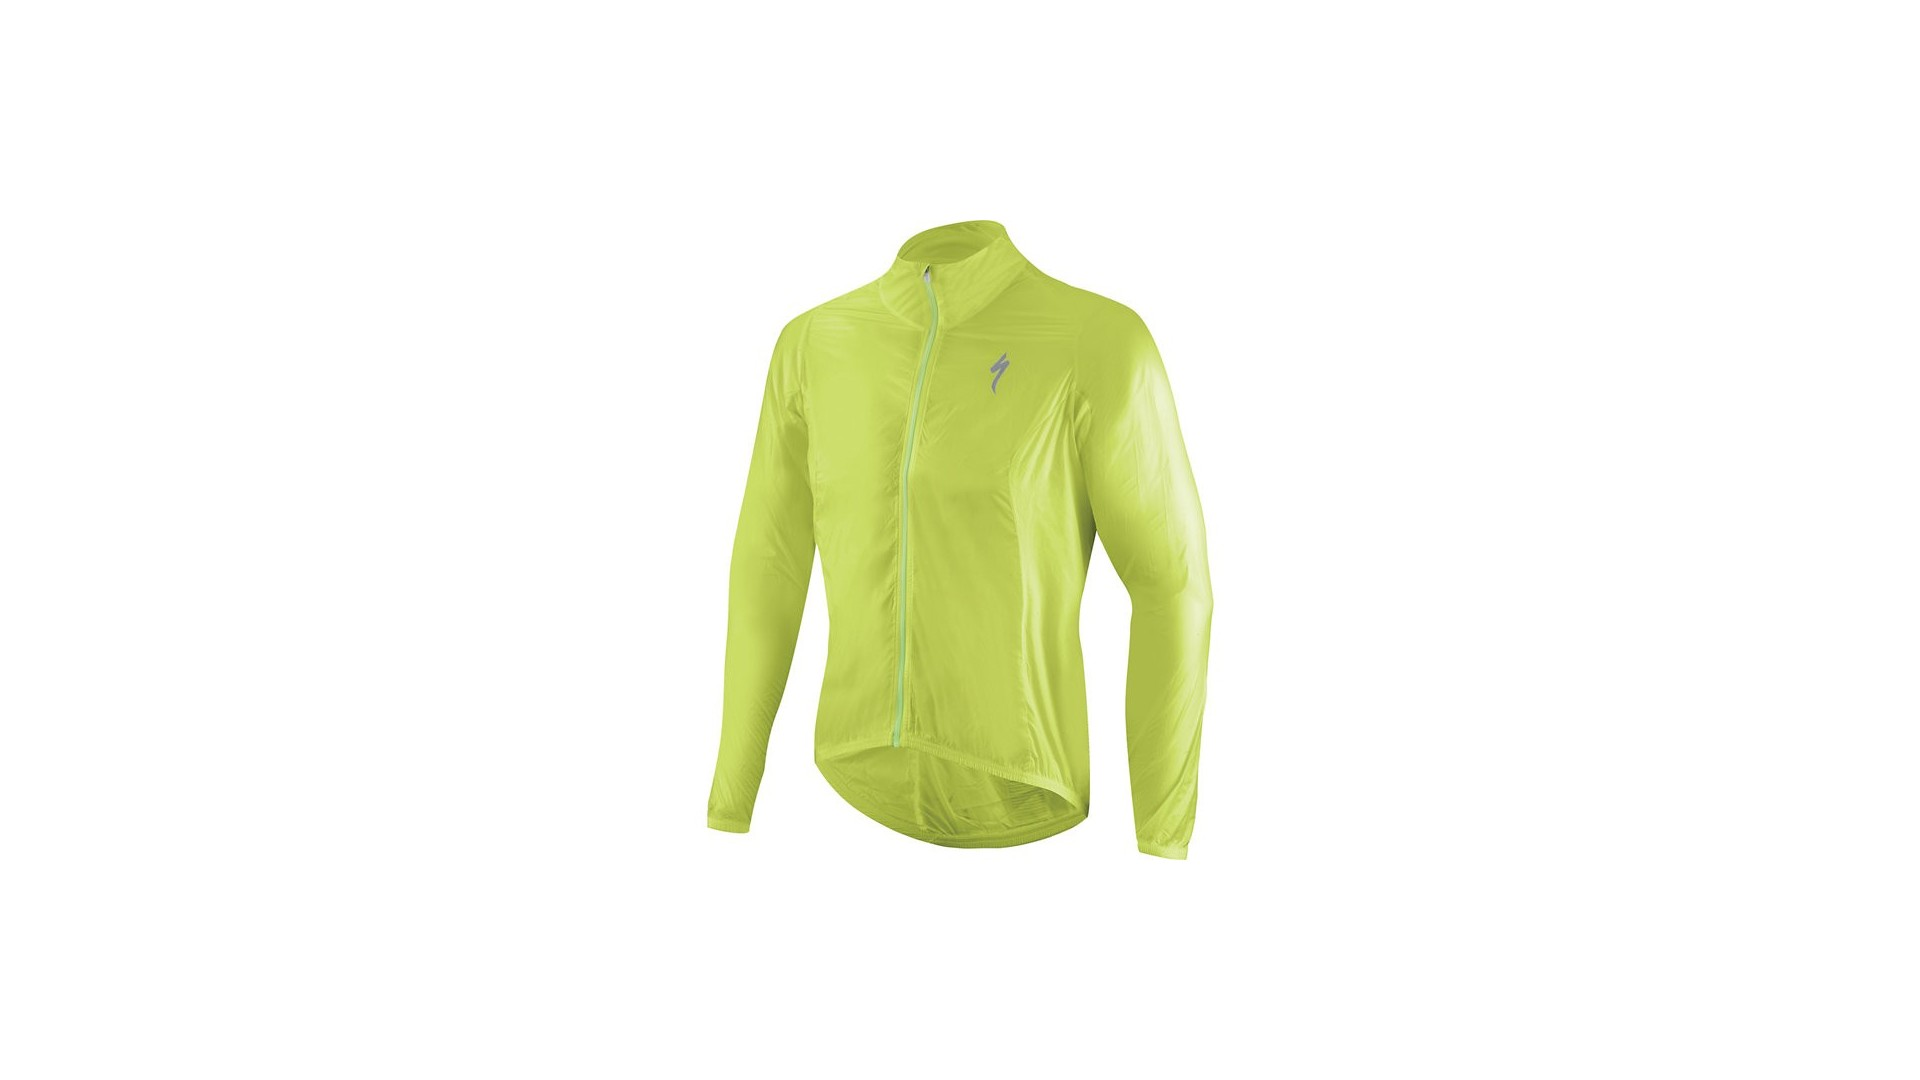 Deflect Comp Win Jacket Specialized Hyper Green